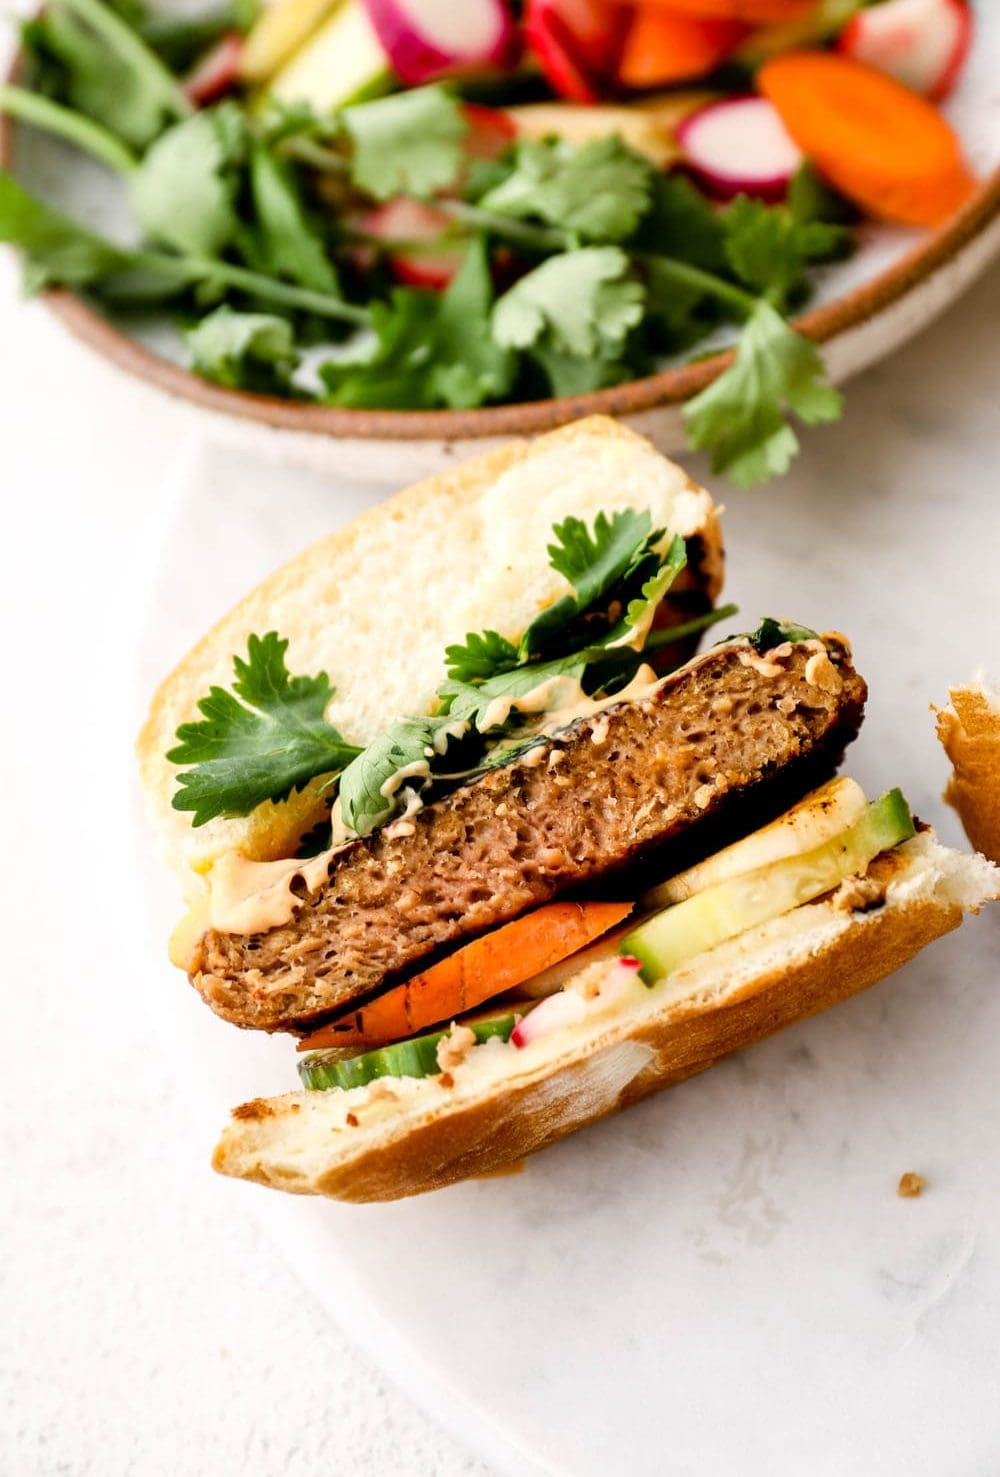 A Bahn Mi Burger cut in half revealing the layers of pickled veggies, burger, sriracha mayo, and cilantro.